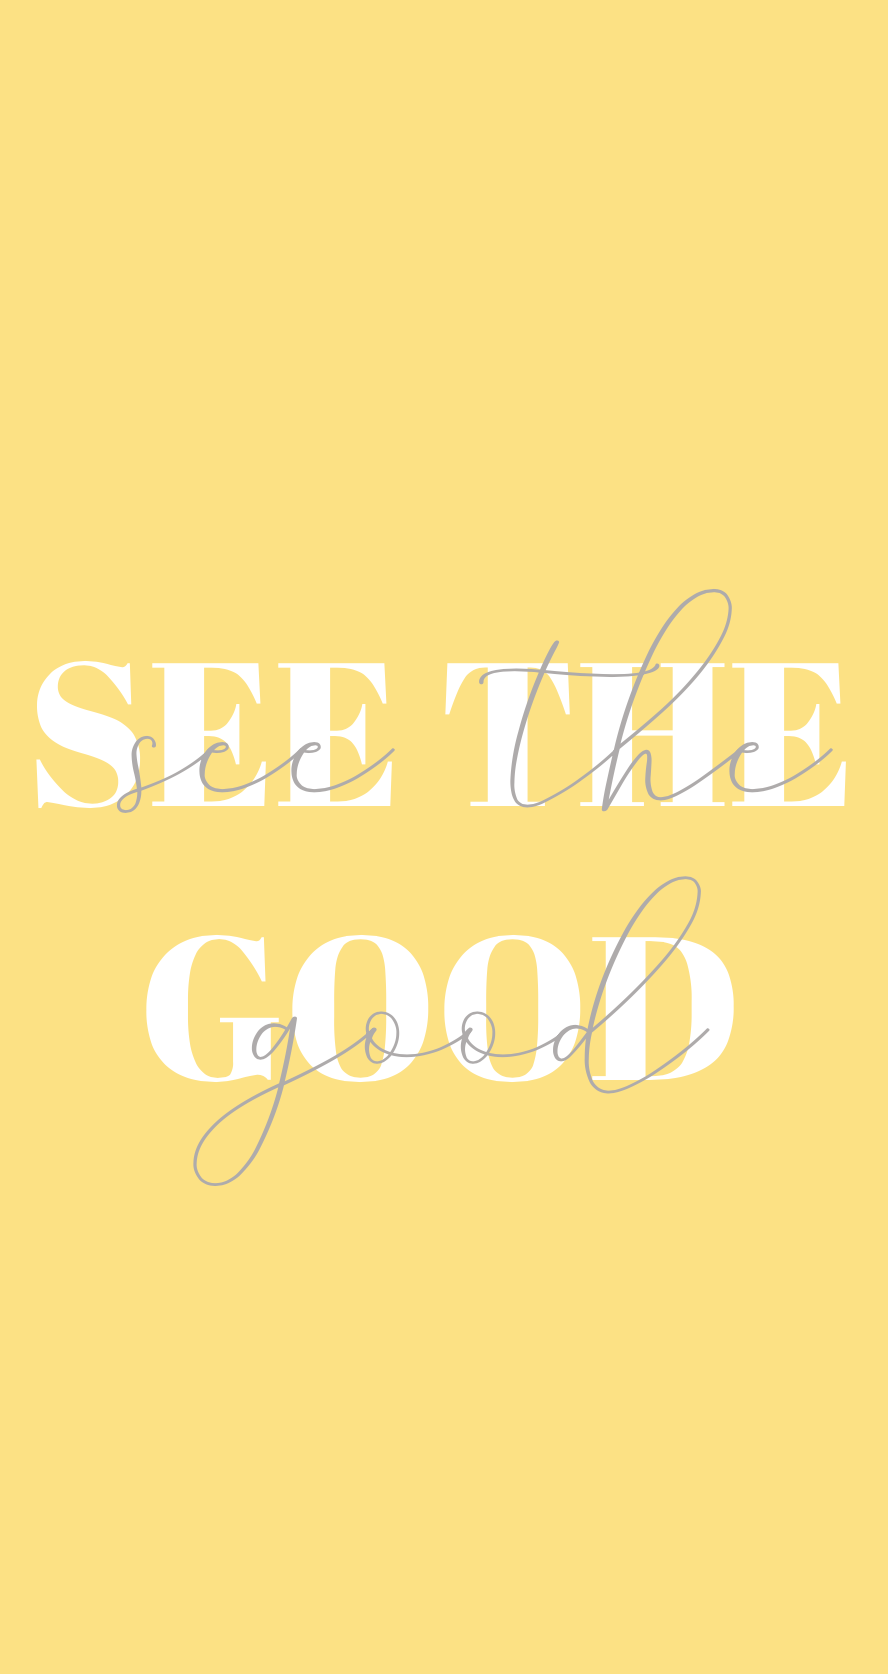 See the good yellow quote wallpaper - iphone background, iphone